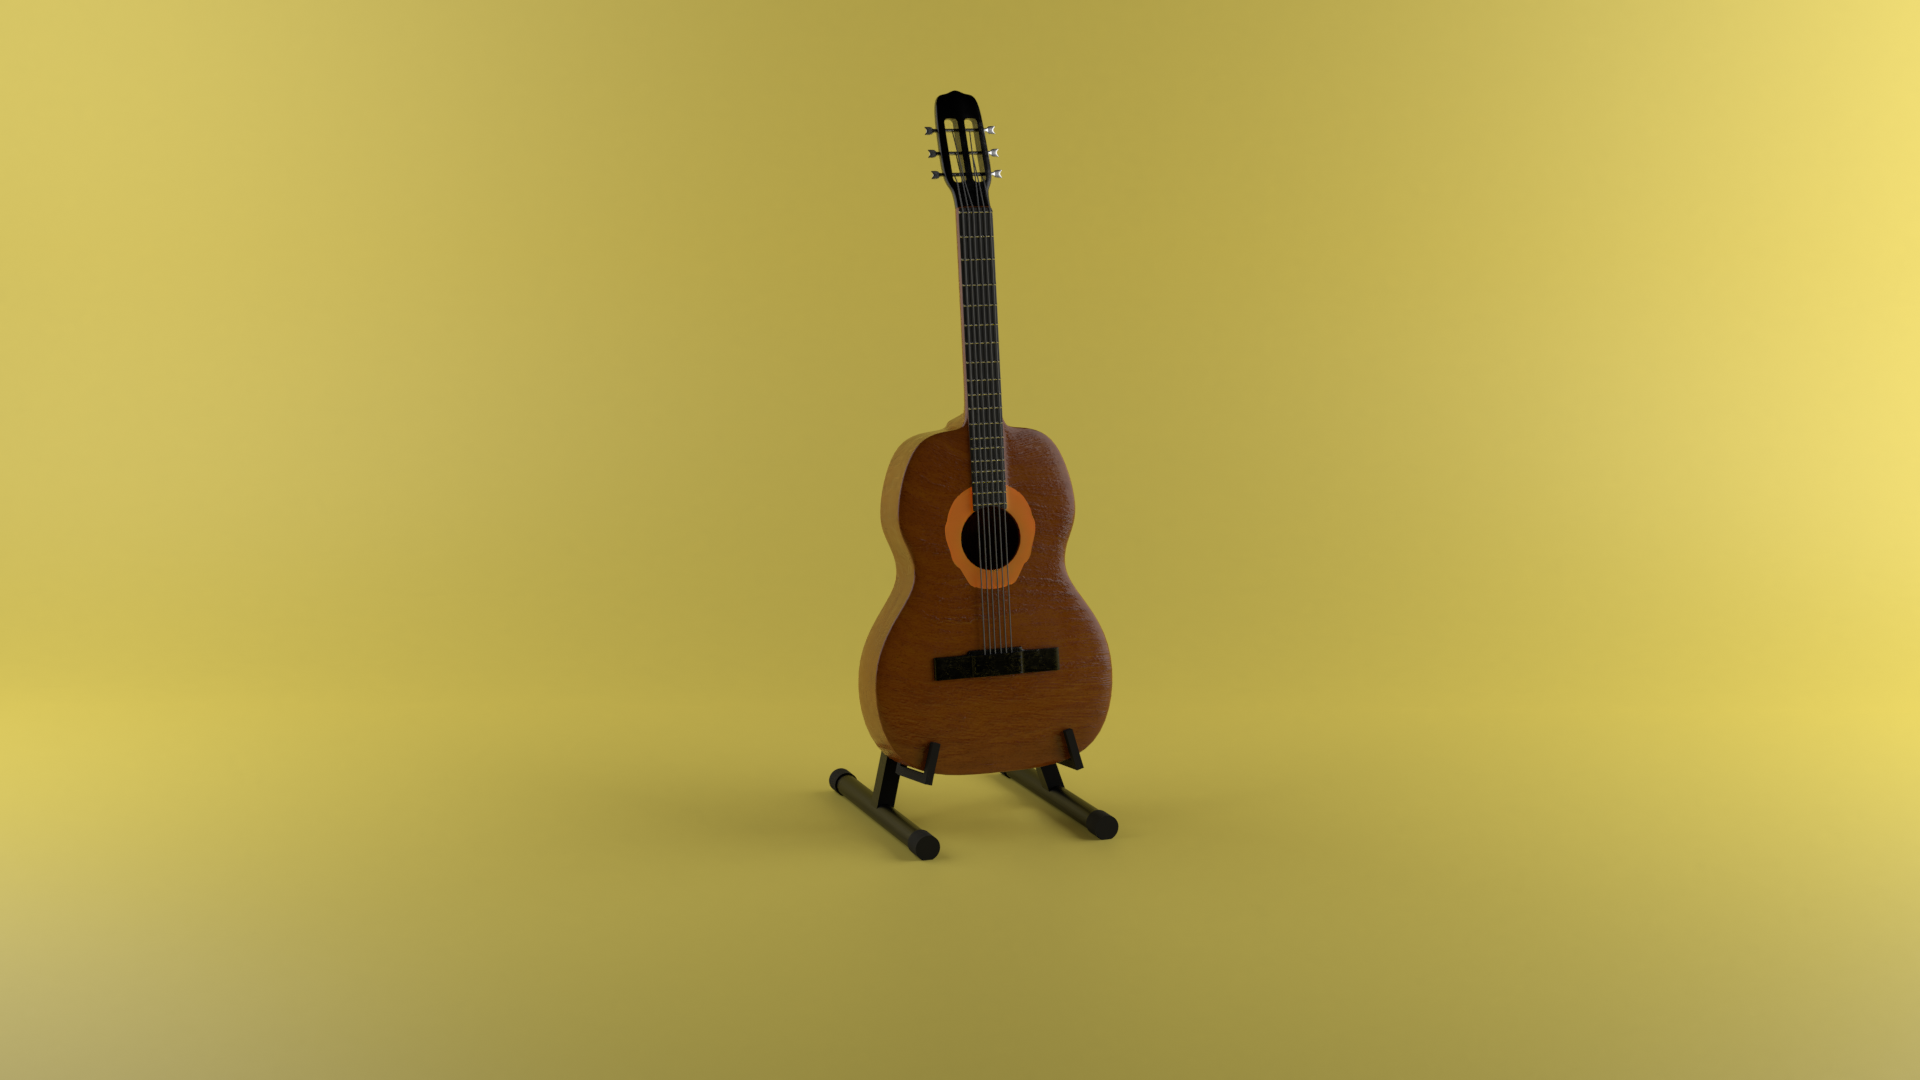 guitar preview image 1